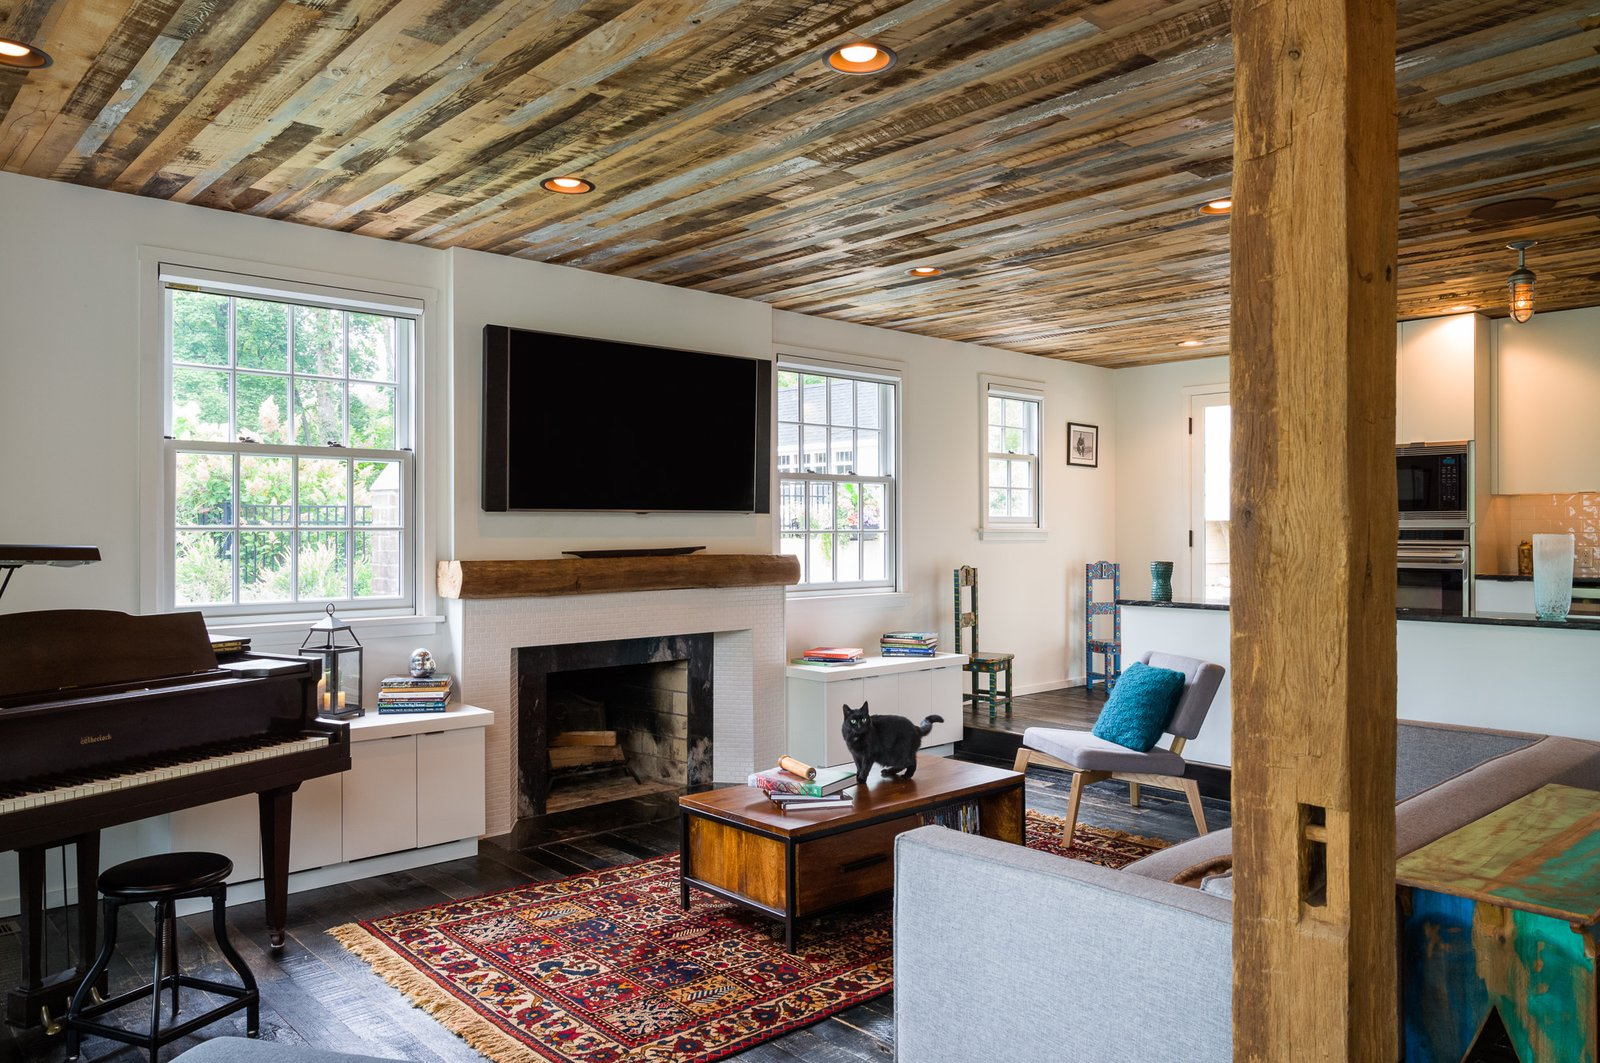 """A few elements of the original home were preserved, such as the brick fireplace in the main living room, where an existing beam was repurposed to act as the mantel. The wood flooring is made of reclaimed fence boards, treated with a black finish originally employed to prevent horses from gnawing on the boards. """"We all walk around barefoot, so it's nice to feel the texture of the wood and all the history that was put into those boards. Over time, the dents and bruises will be put in there by our family, so it's going to weather with us, which is nice,"""" says Michael.  Photo 3 of 8 in A Loving Renovation Updates a Rustic Family Home with Reclaimed Materials"""